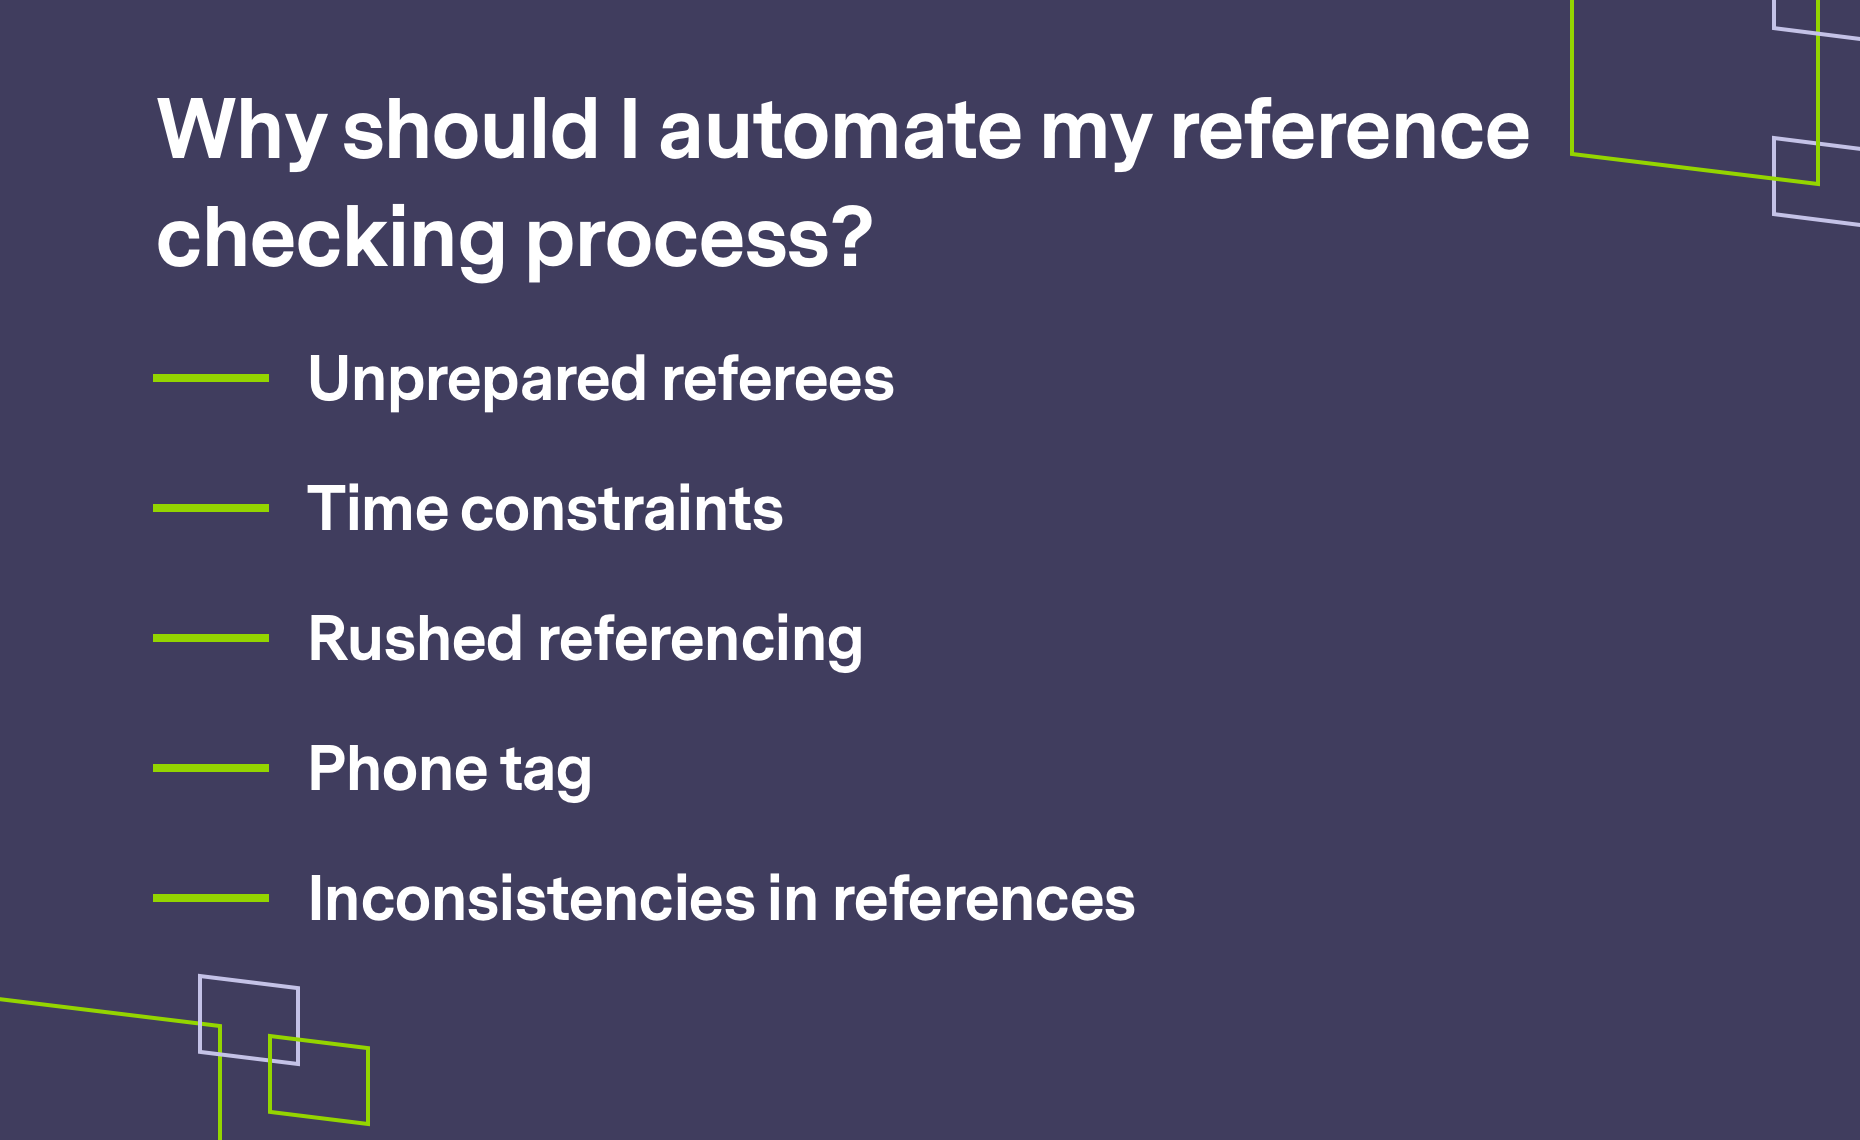 Why should you Automate reference checking process